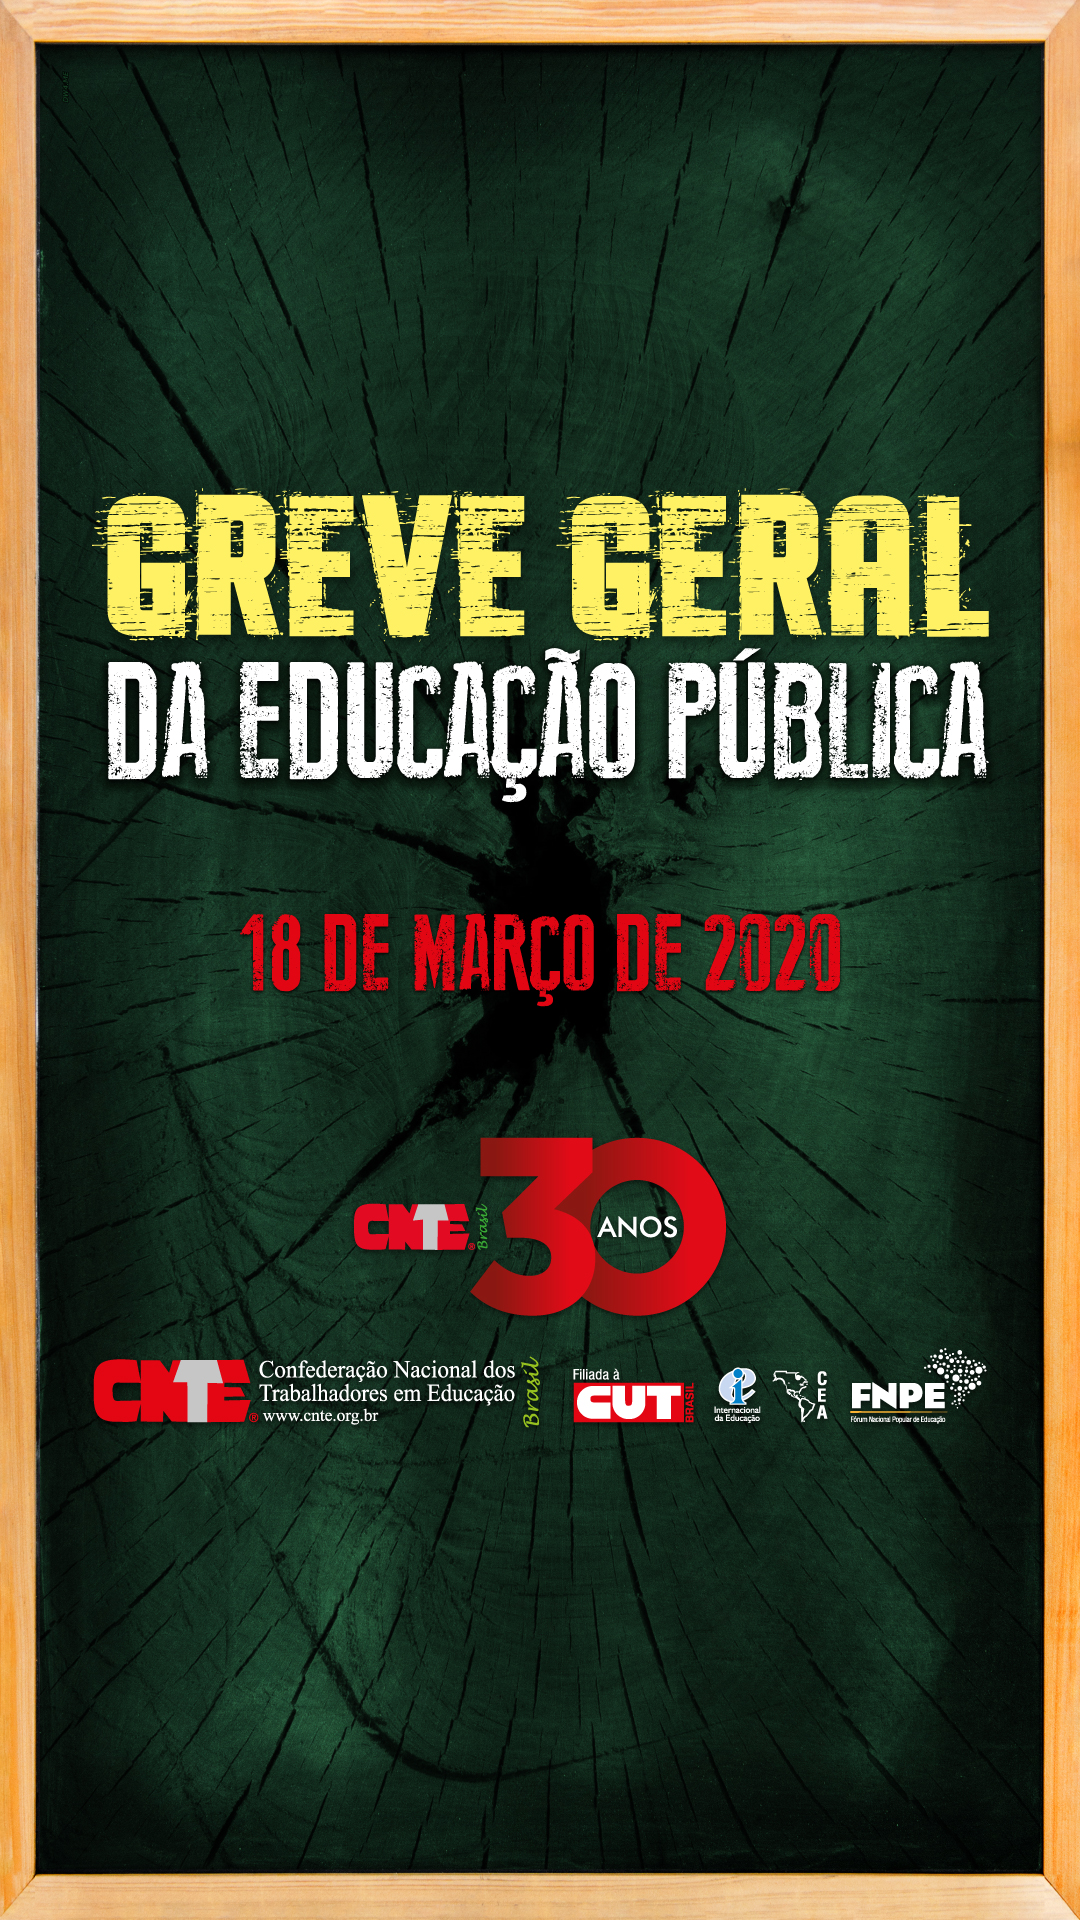 greve geral educacao publica post whatsapp